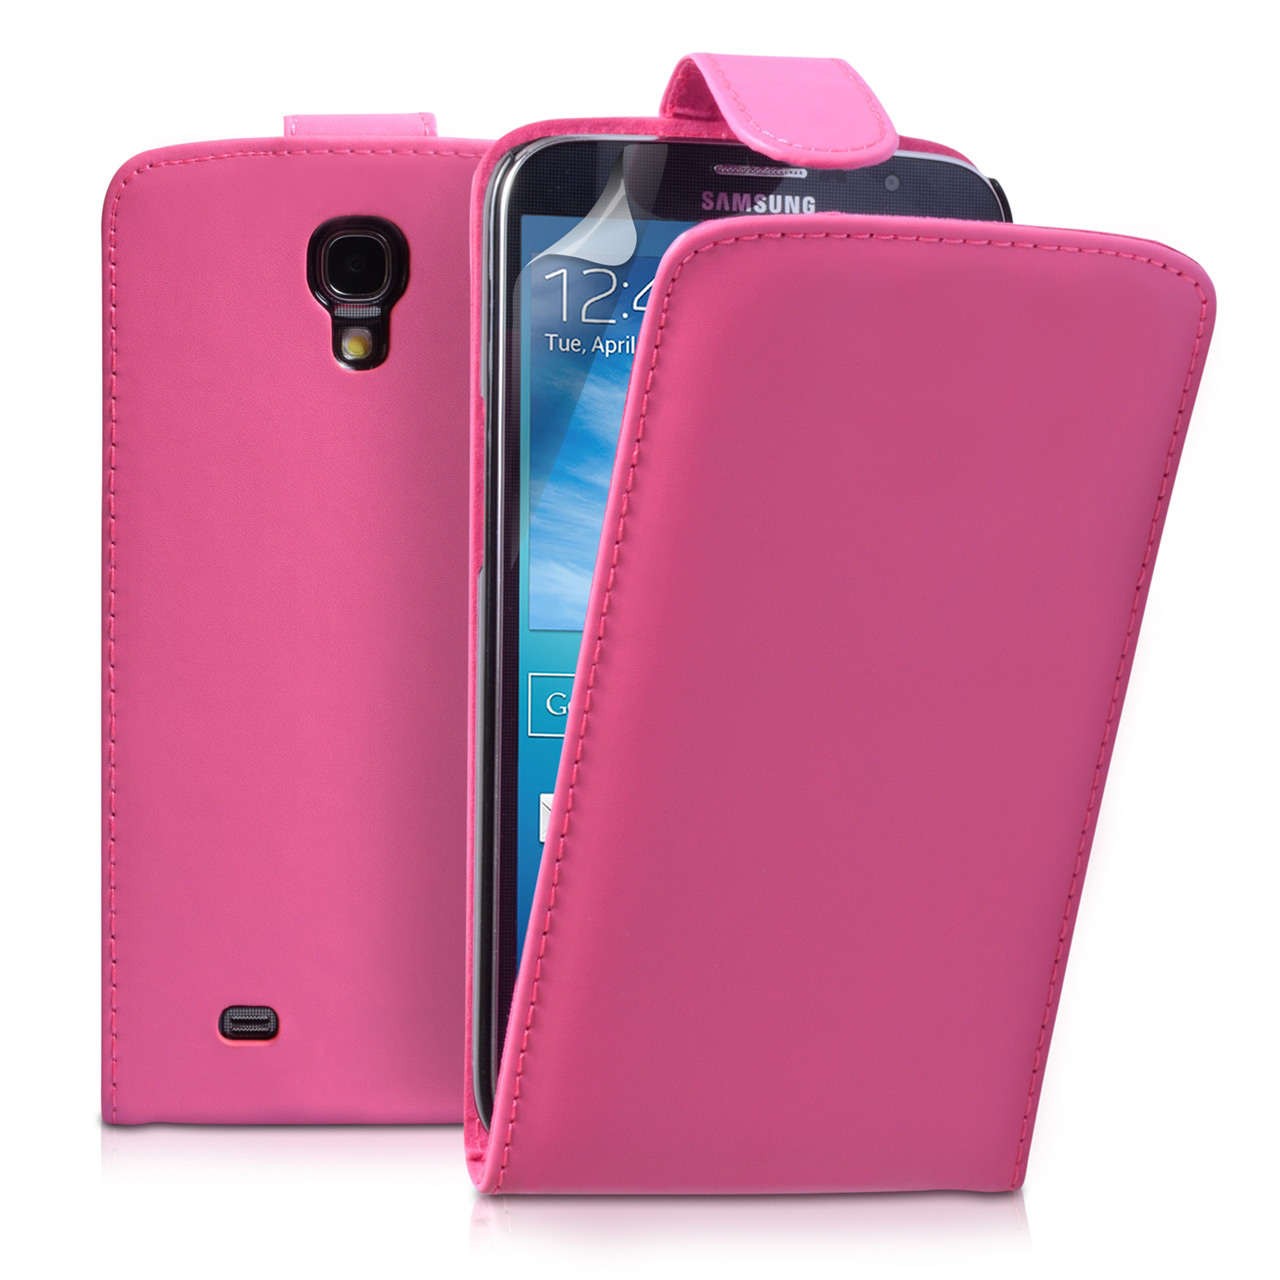 YouSave Samsung Galaxy Mega 6.3 Leather Effect Flip Case - Hot Pink